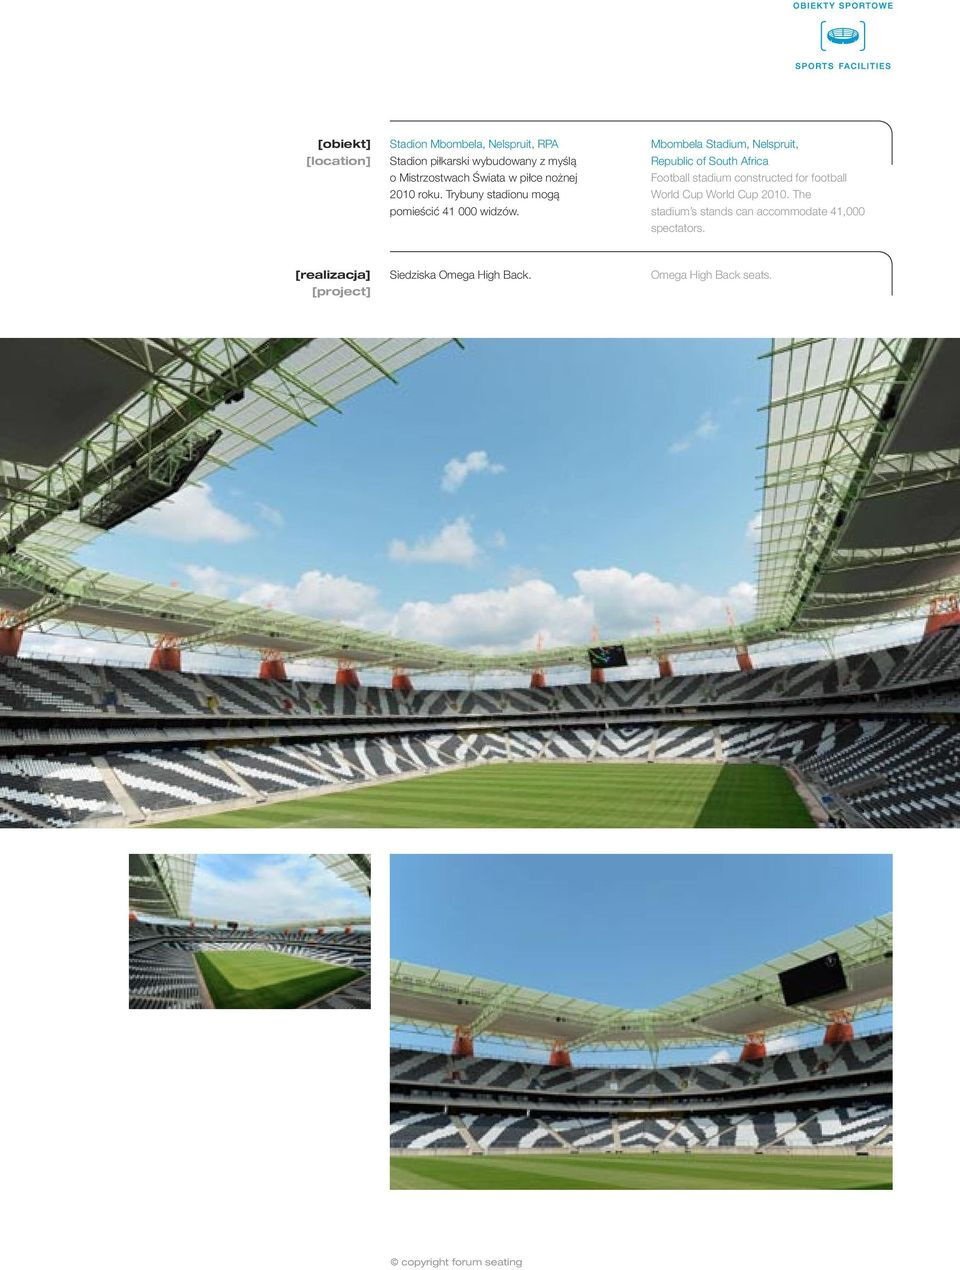 Mbombela Stadium, Nelspruit, Republic of South Africa Football stadium constructed for football World